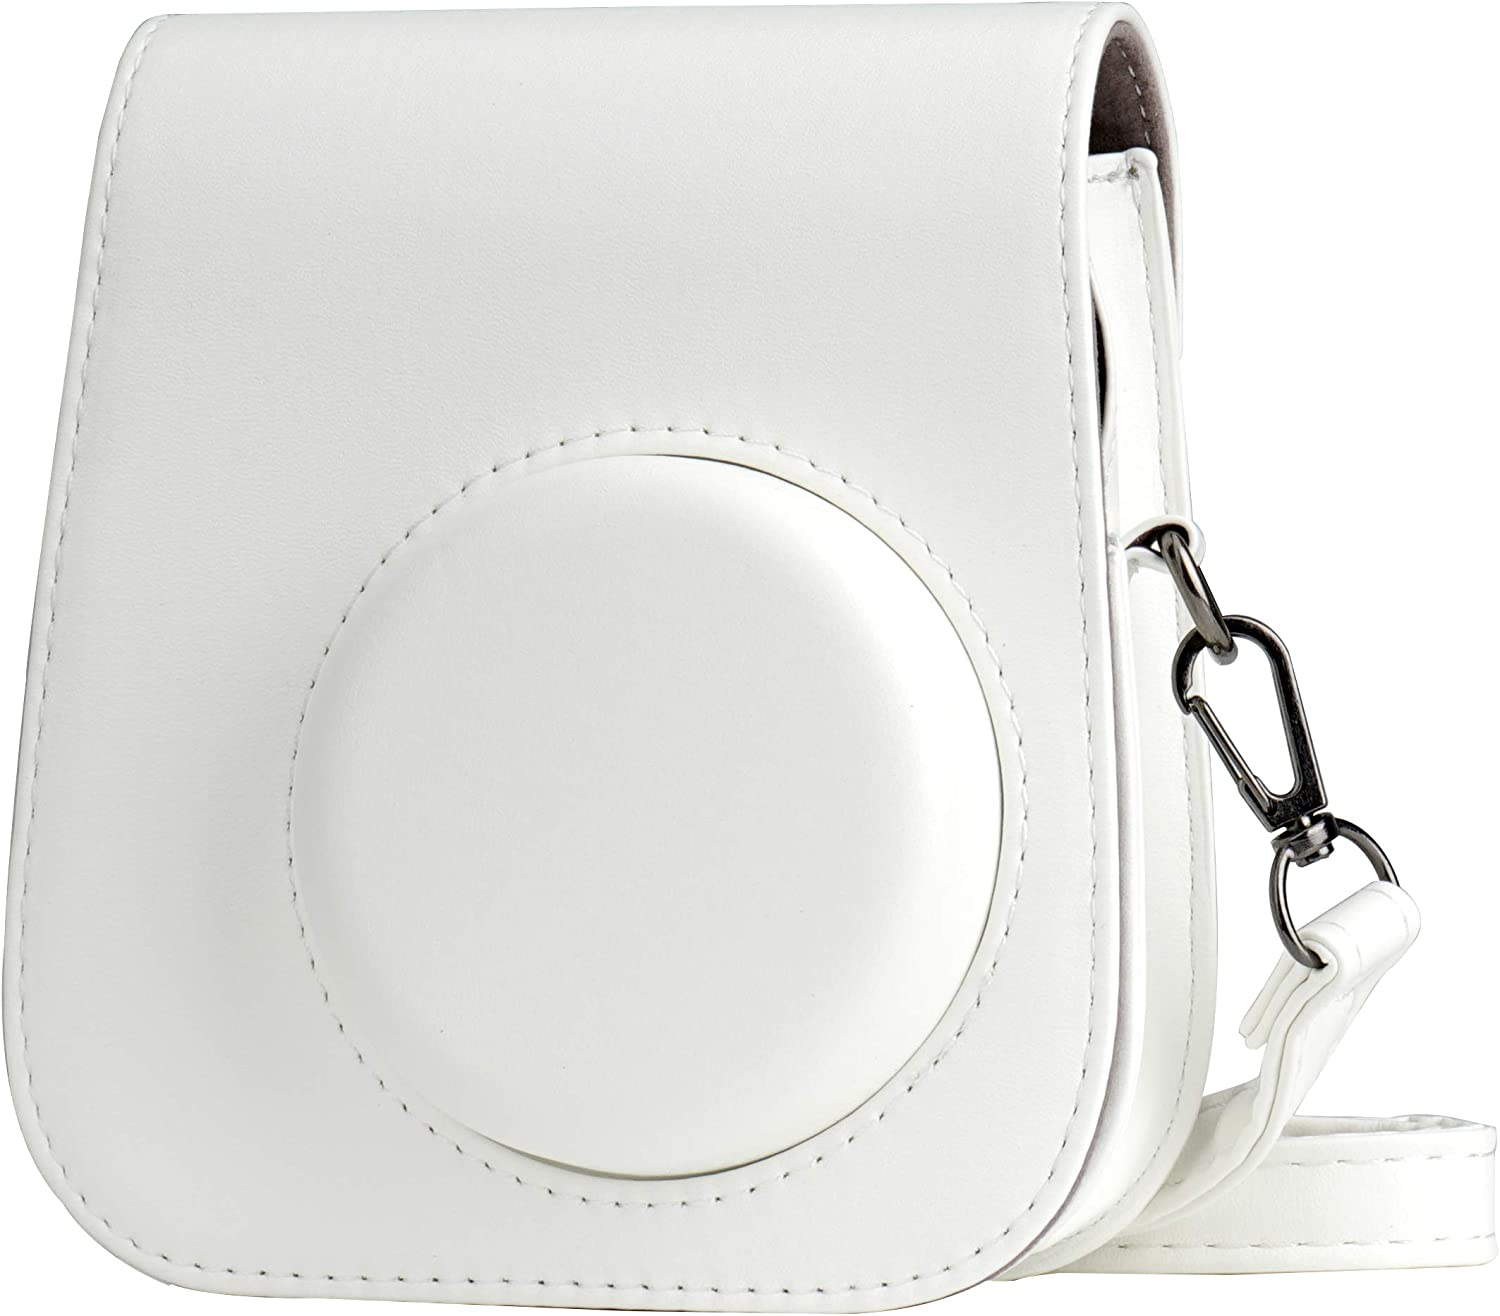 Blummy PU Leather Camera Case for Fujifilm Instax Mini 11 Instant Camera with Adjustable Strap and Pocket(White)